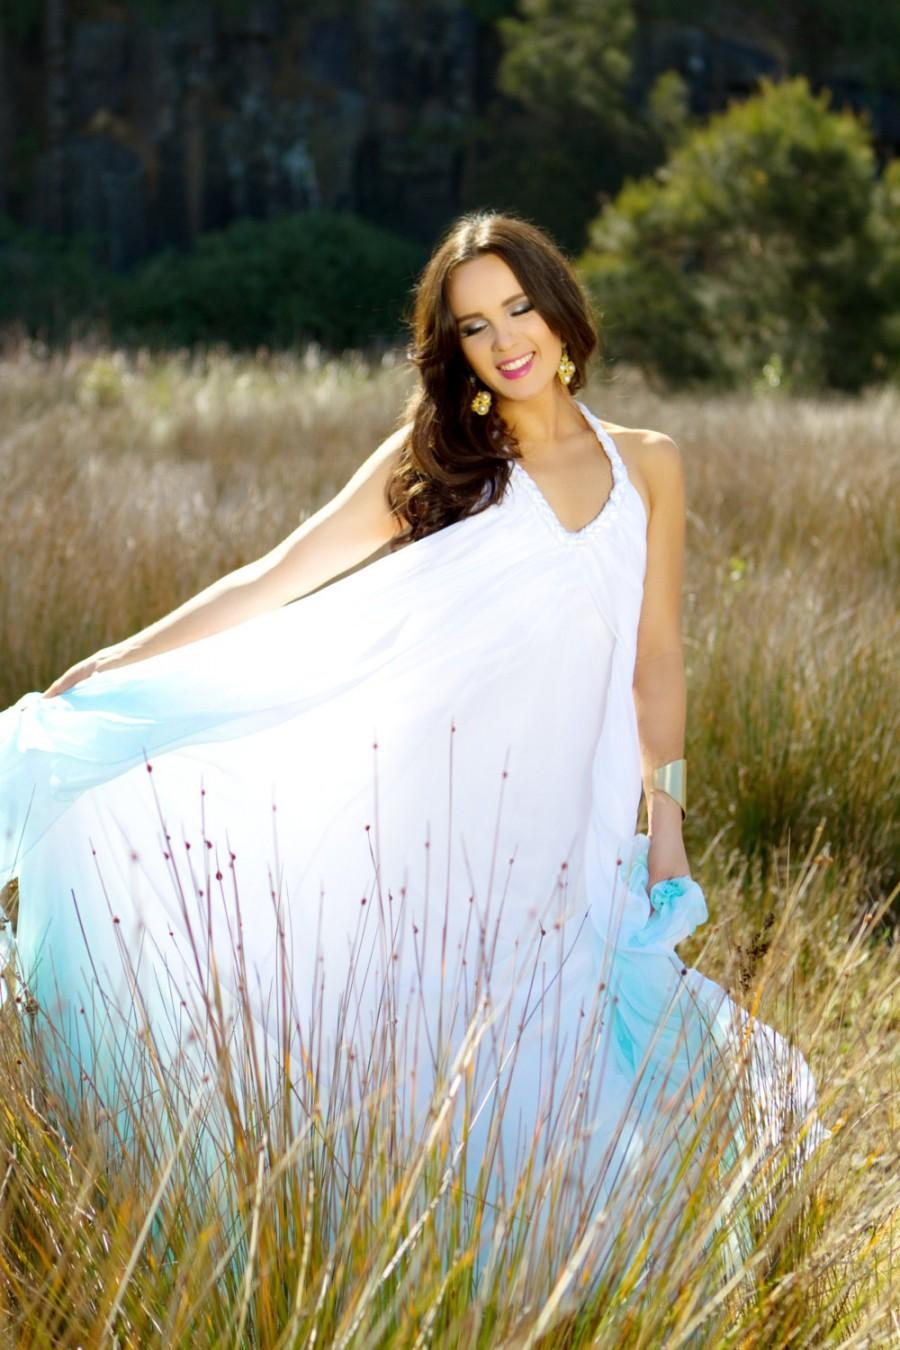 Silk Chiffon Dip Dyed Beach Garden Wedding Dress With Low Back Free Flowing Or Tied Options